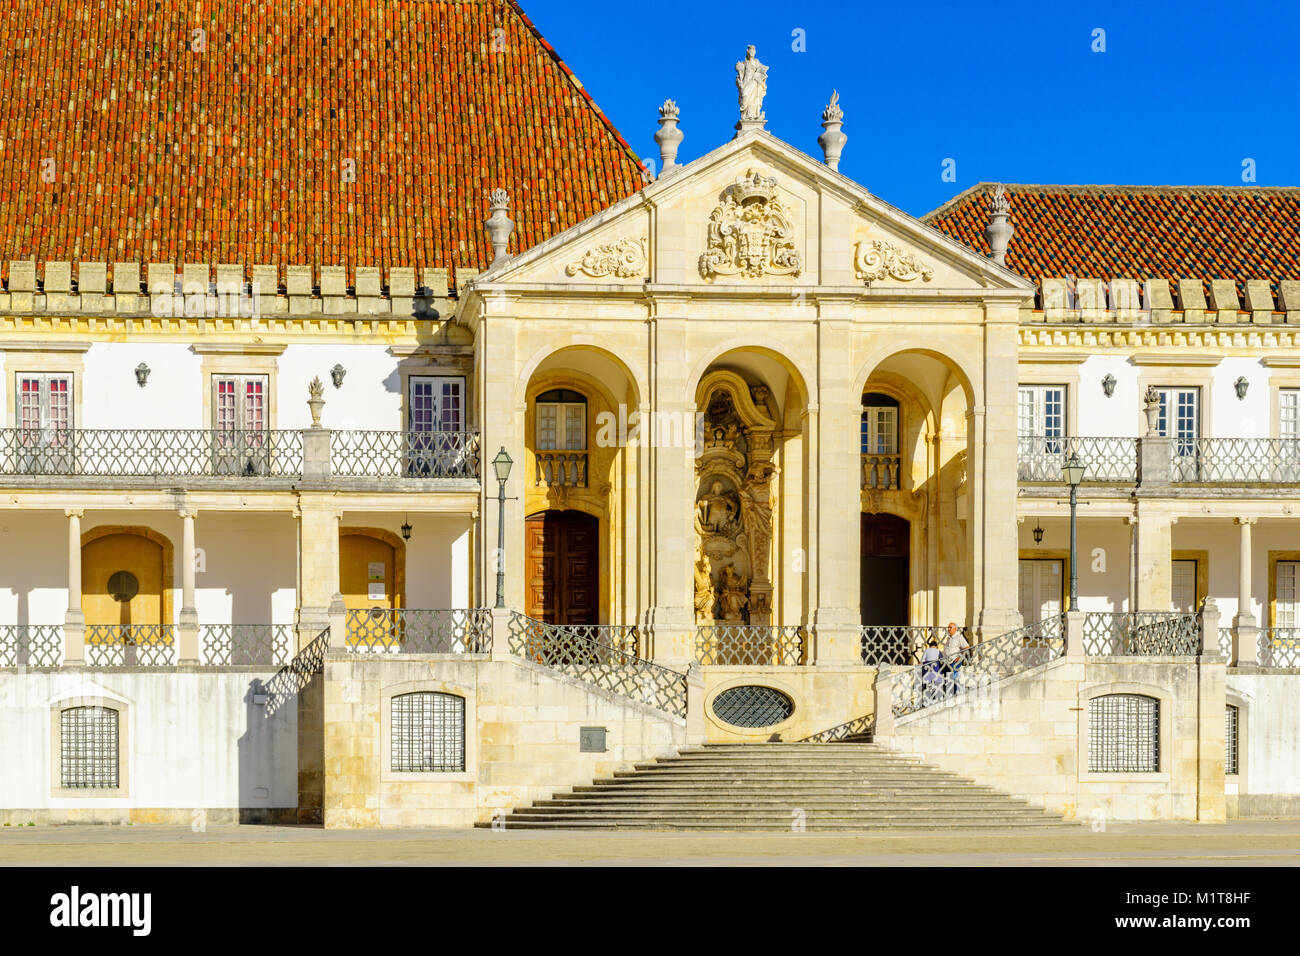 COIMBRA, PORTUGAL - DECEMBER 23, 2017: The Jesus College building in the old university, with visitors, in Coimbra, - Stock Image